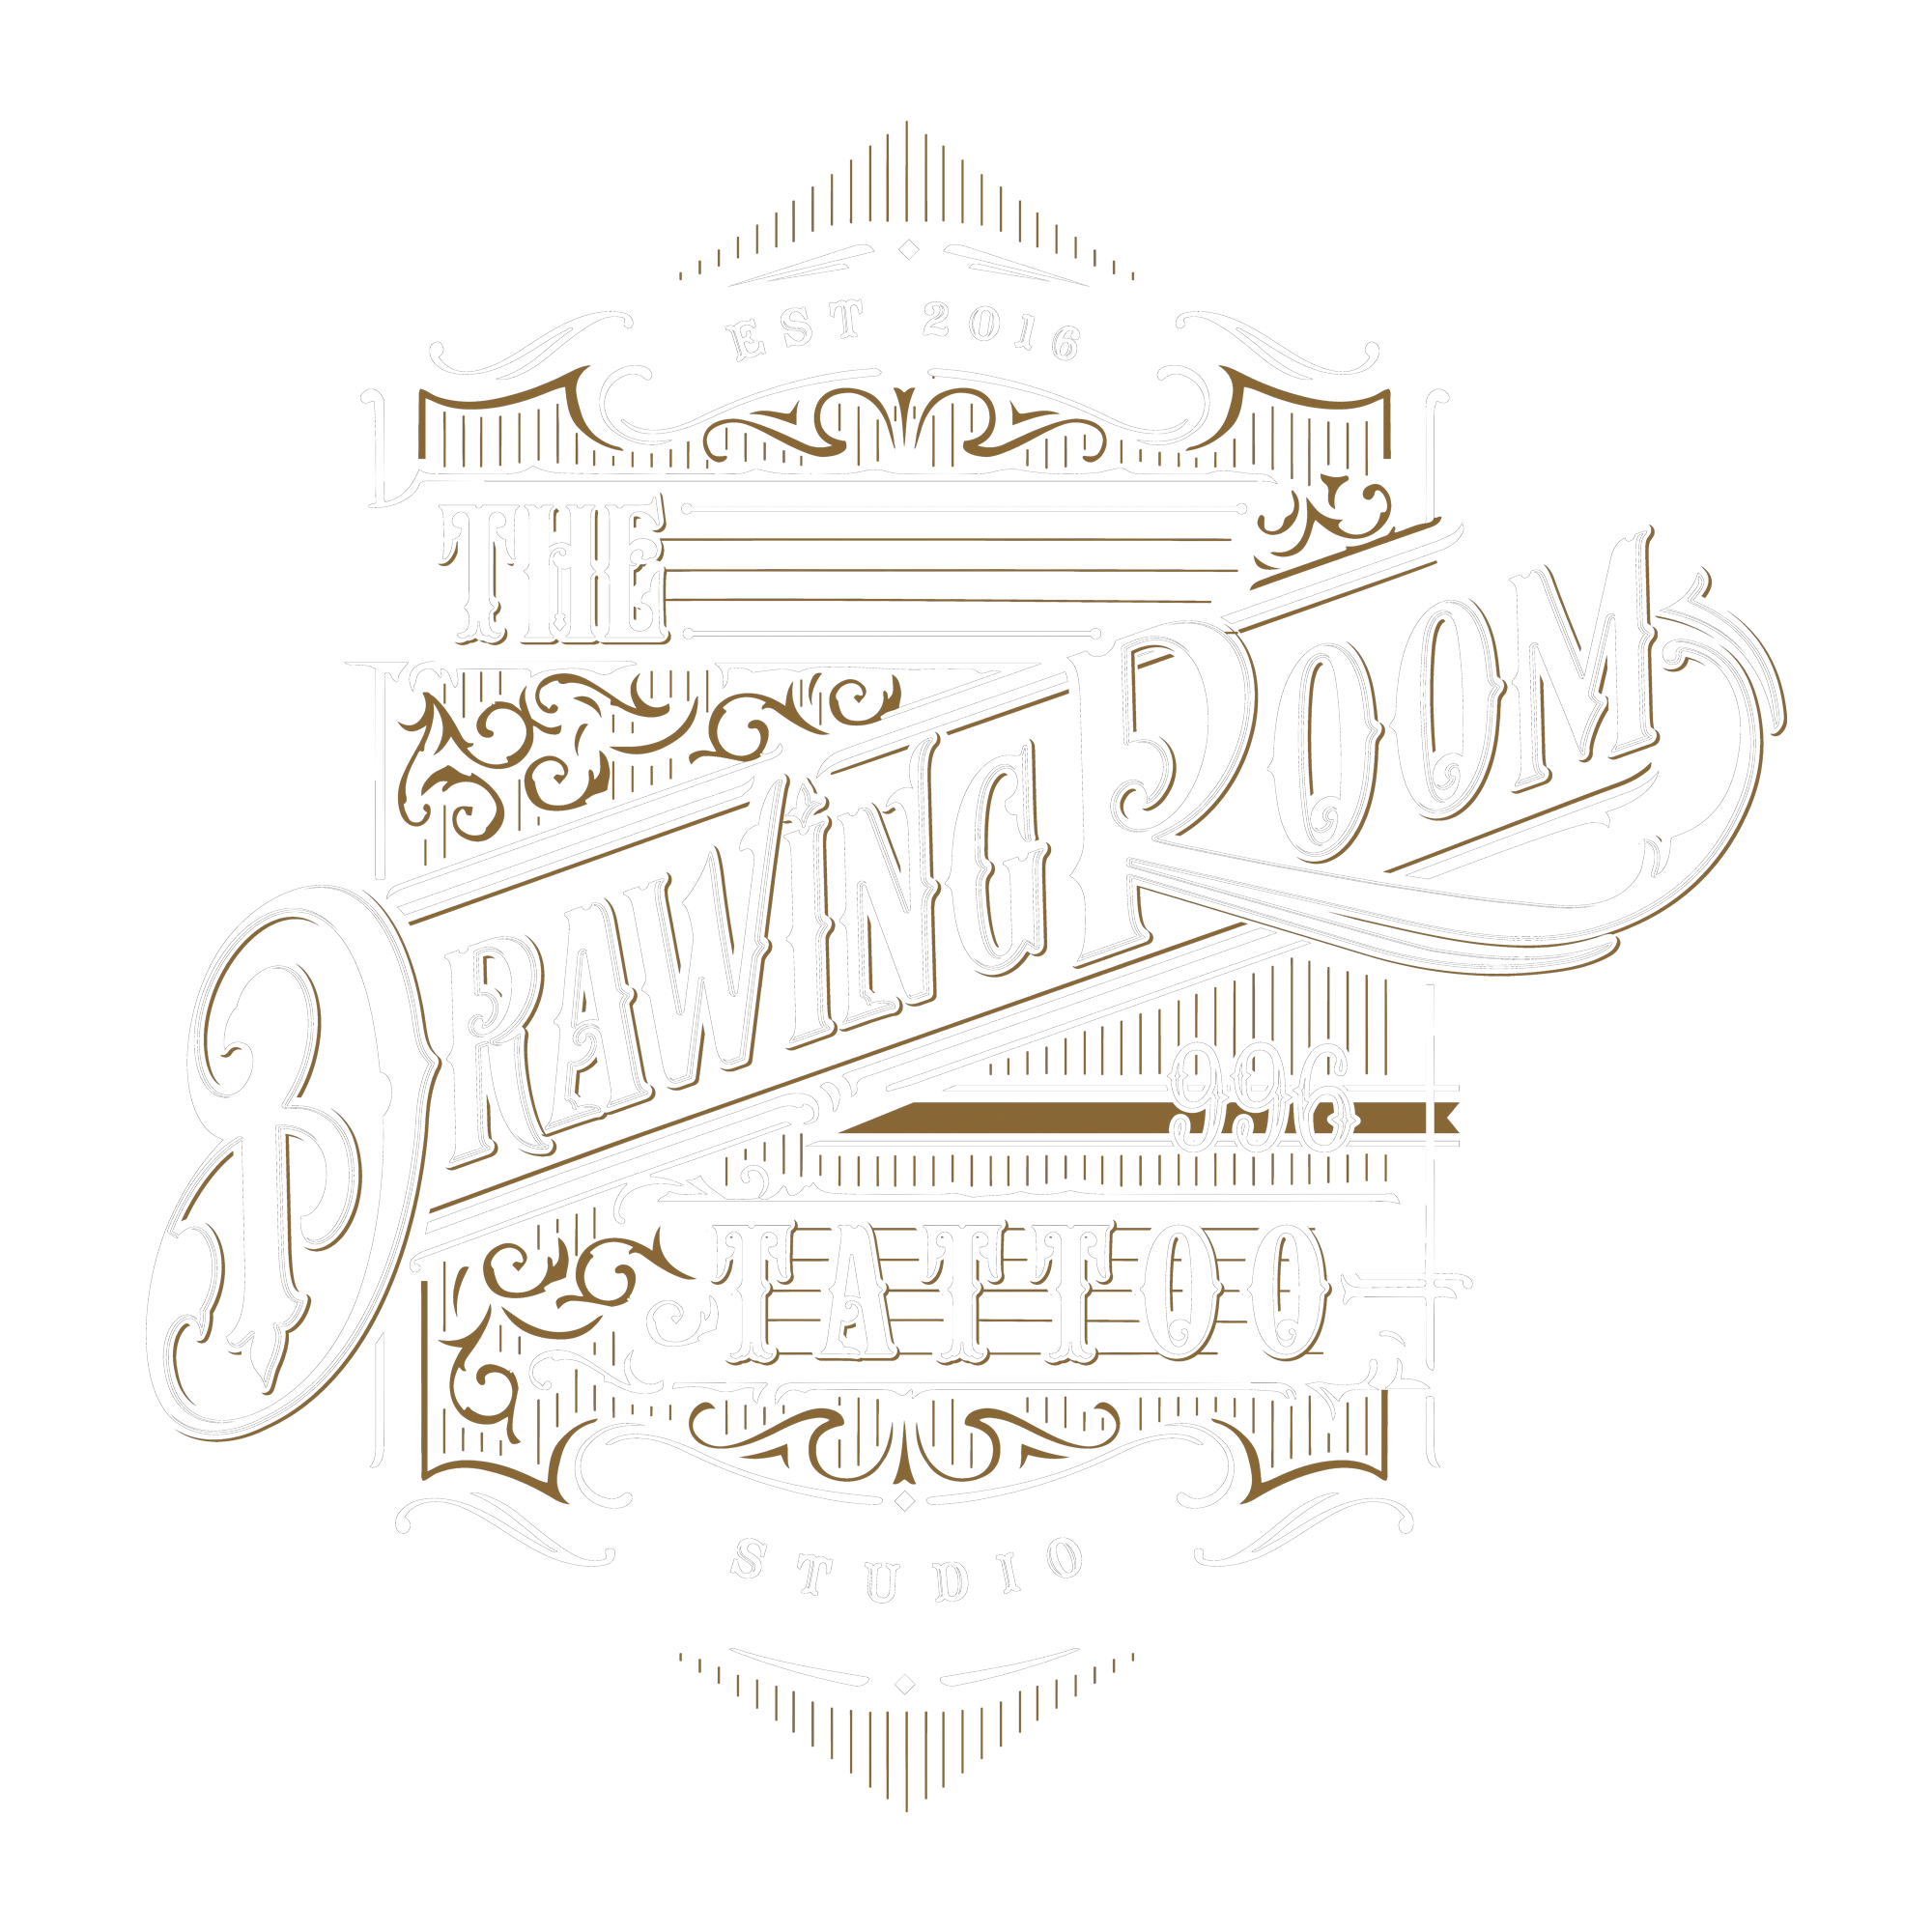 thedrawingroom new